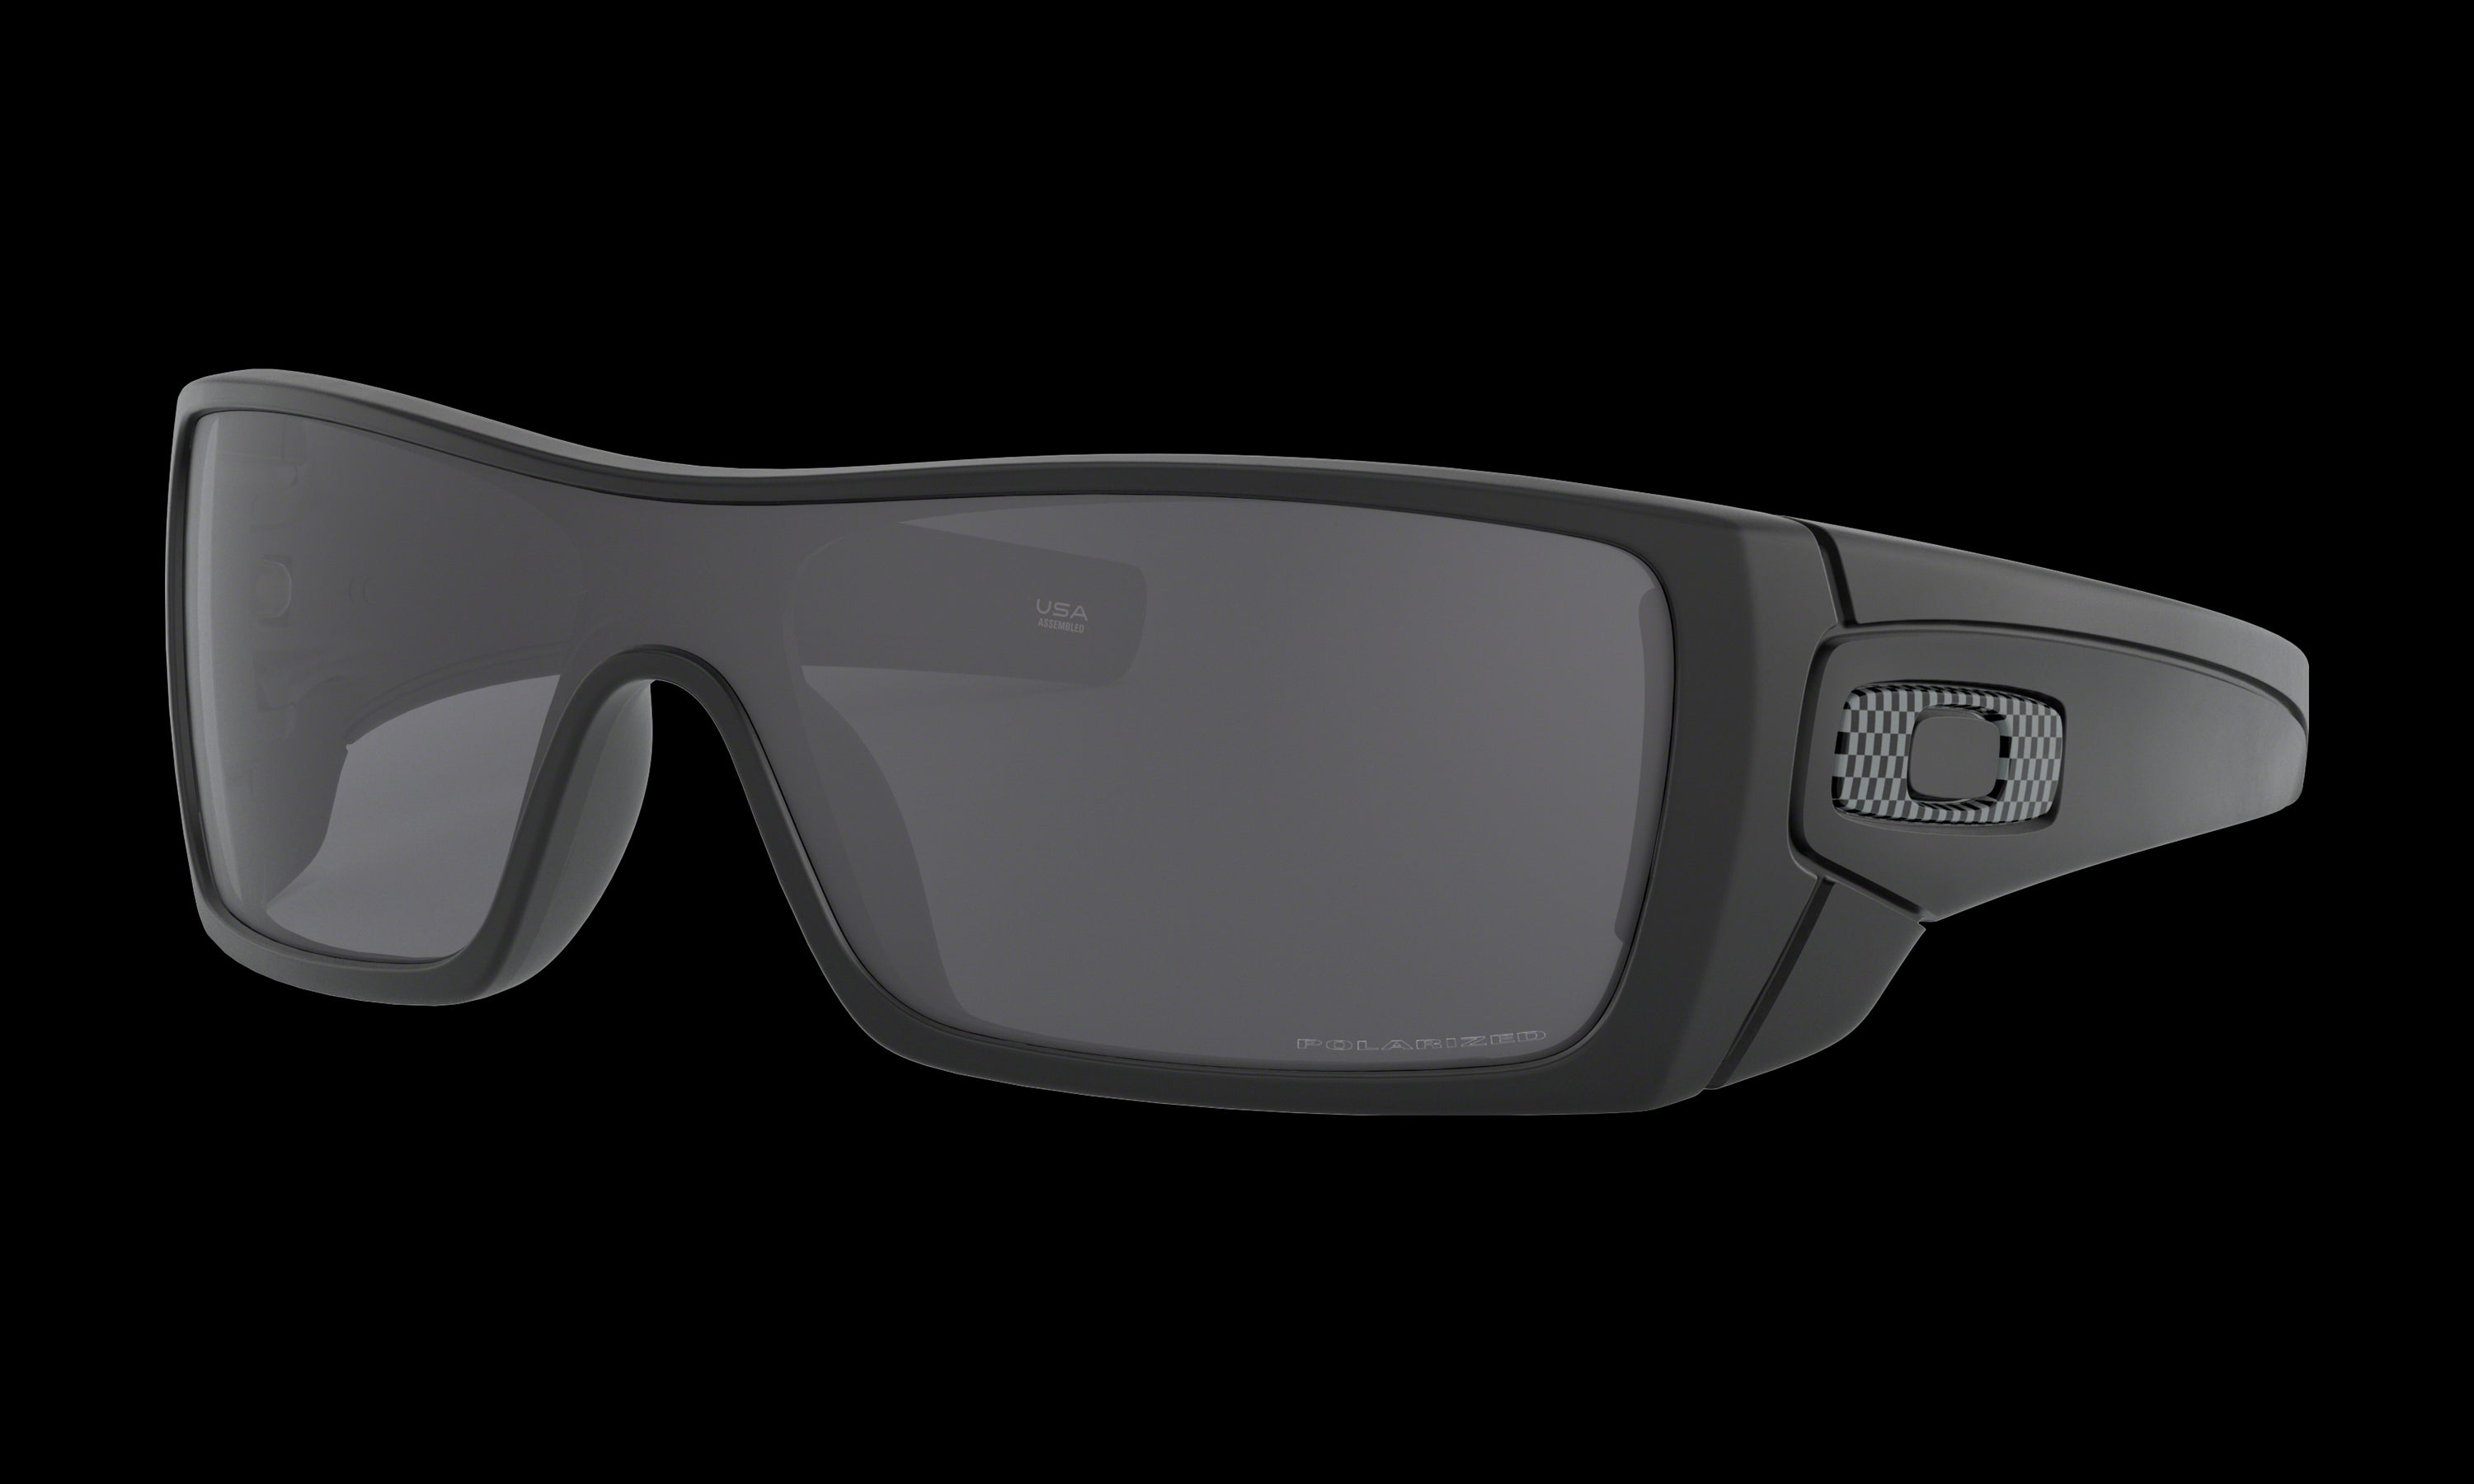 Men's Oakley Batwolf Sunglasses in Matte Black Grey Polarized